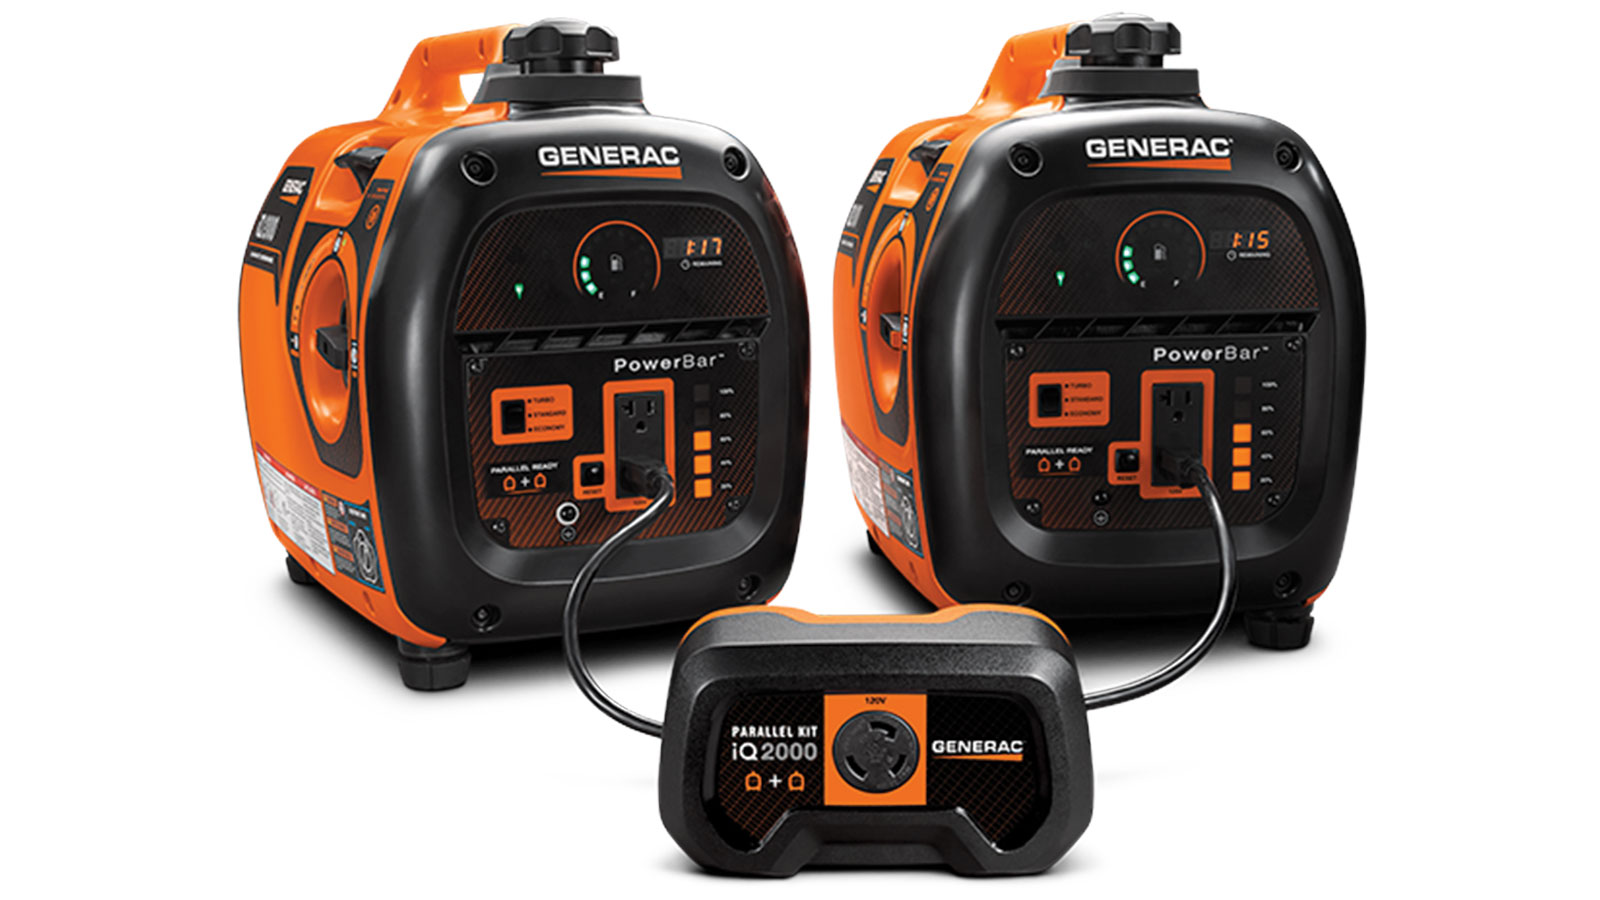 Generac Parallel Kit for iQ2000 Portable Inverter